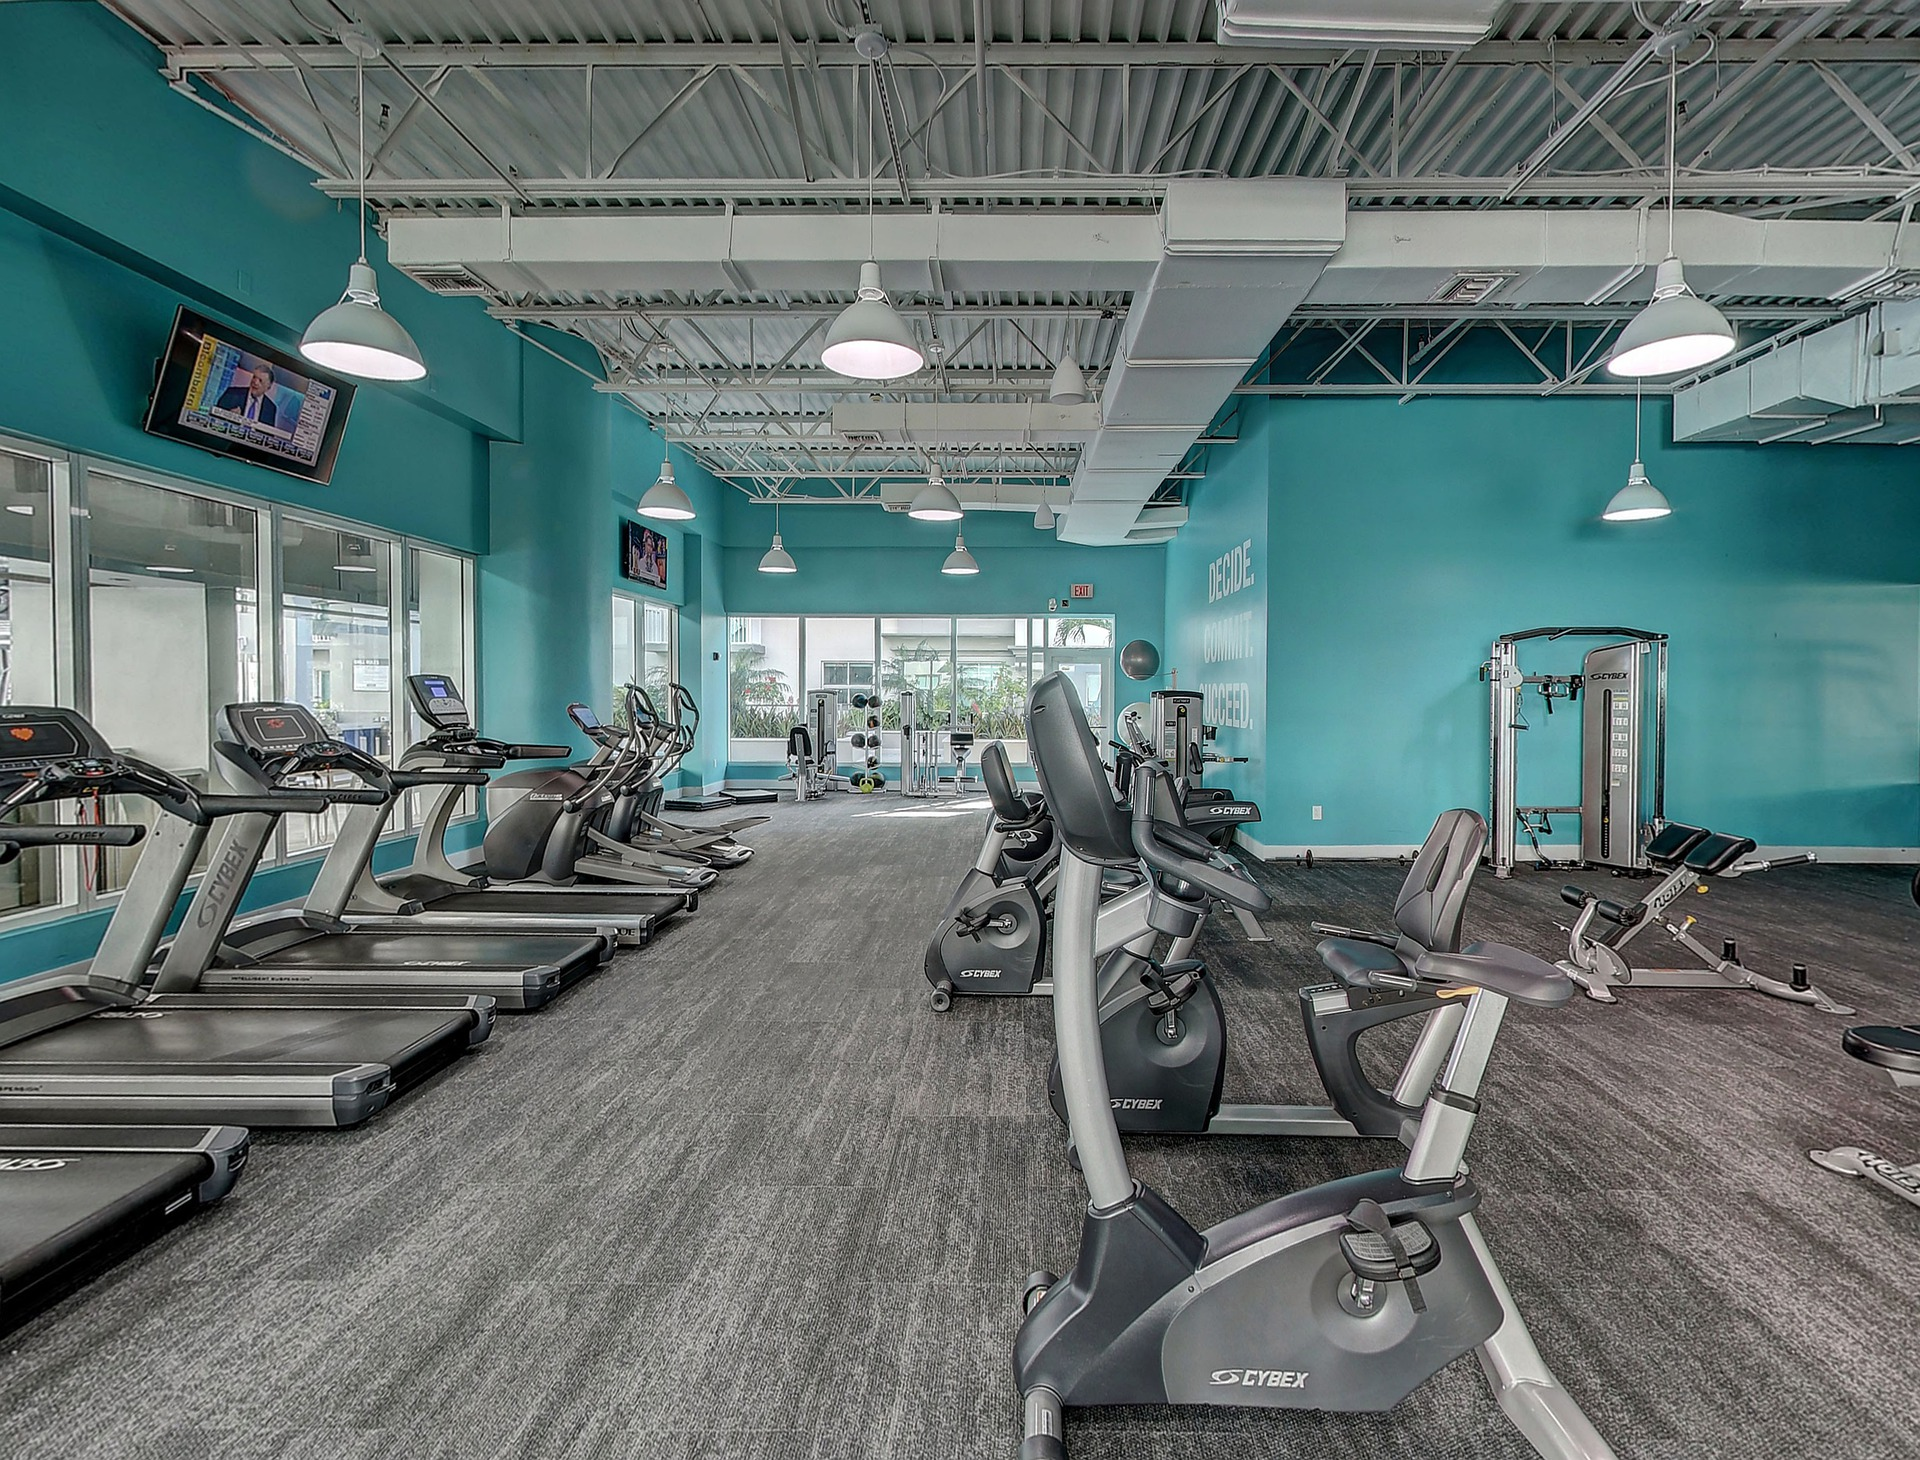 treadmill and gym equipment